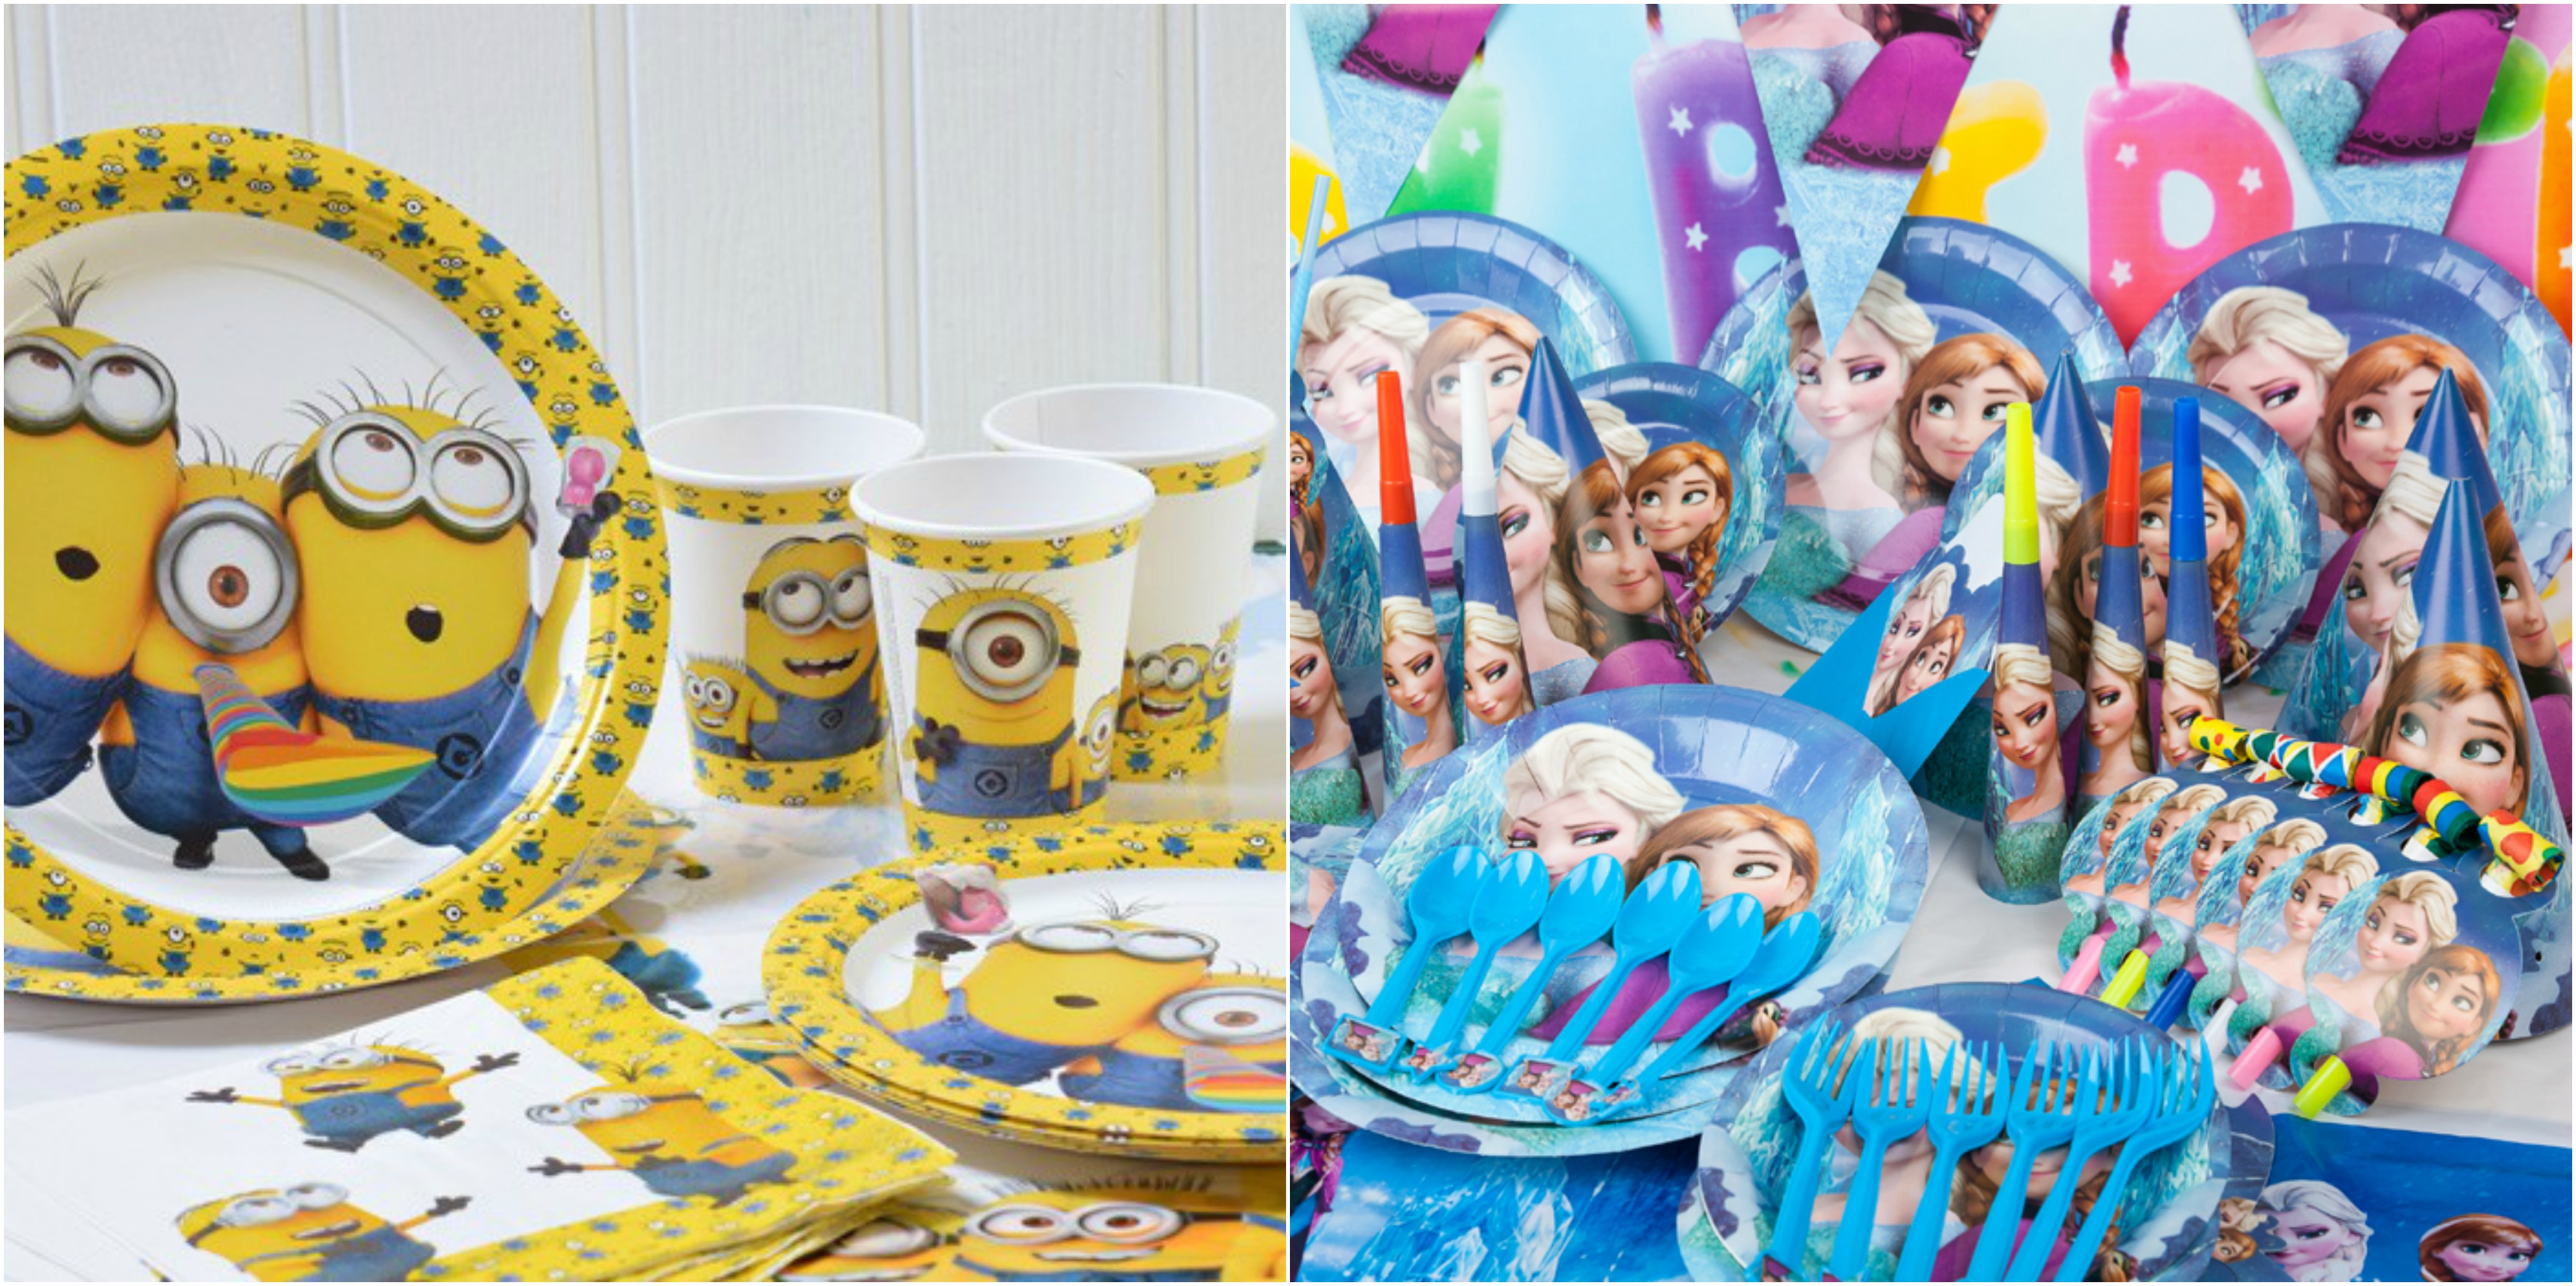 Return Gift Ideas For 1st Birthday Party India